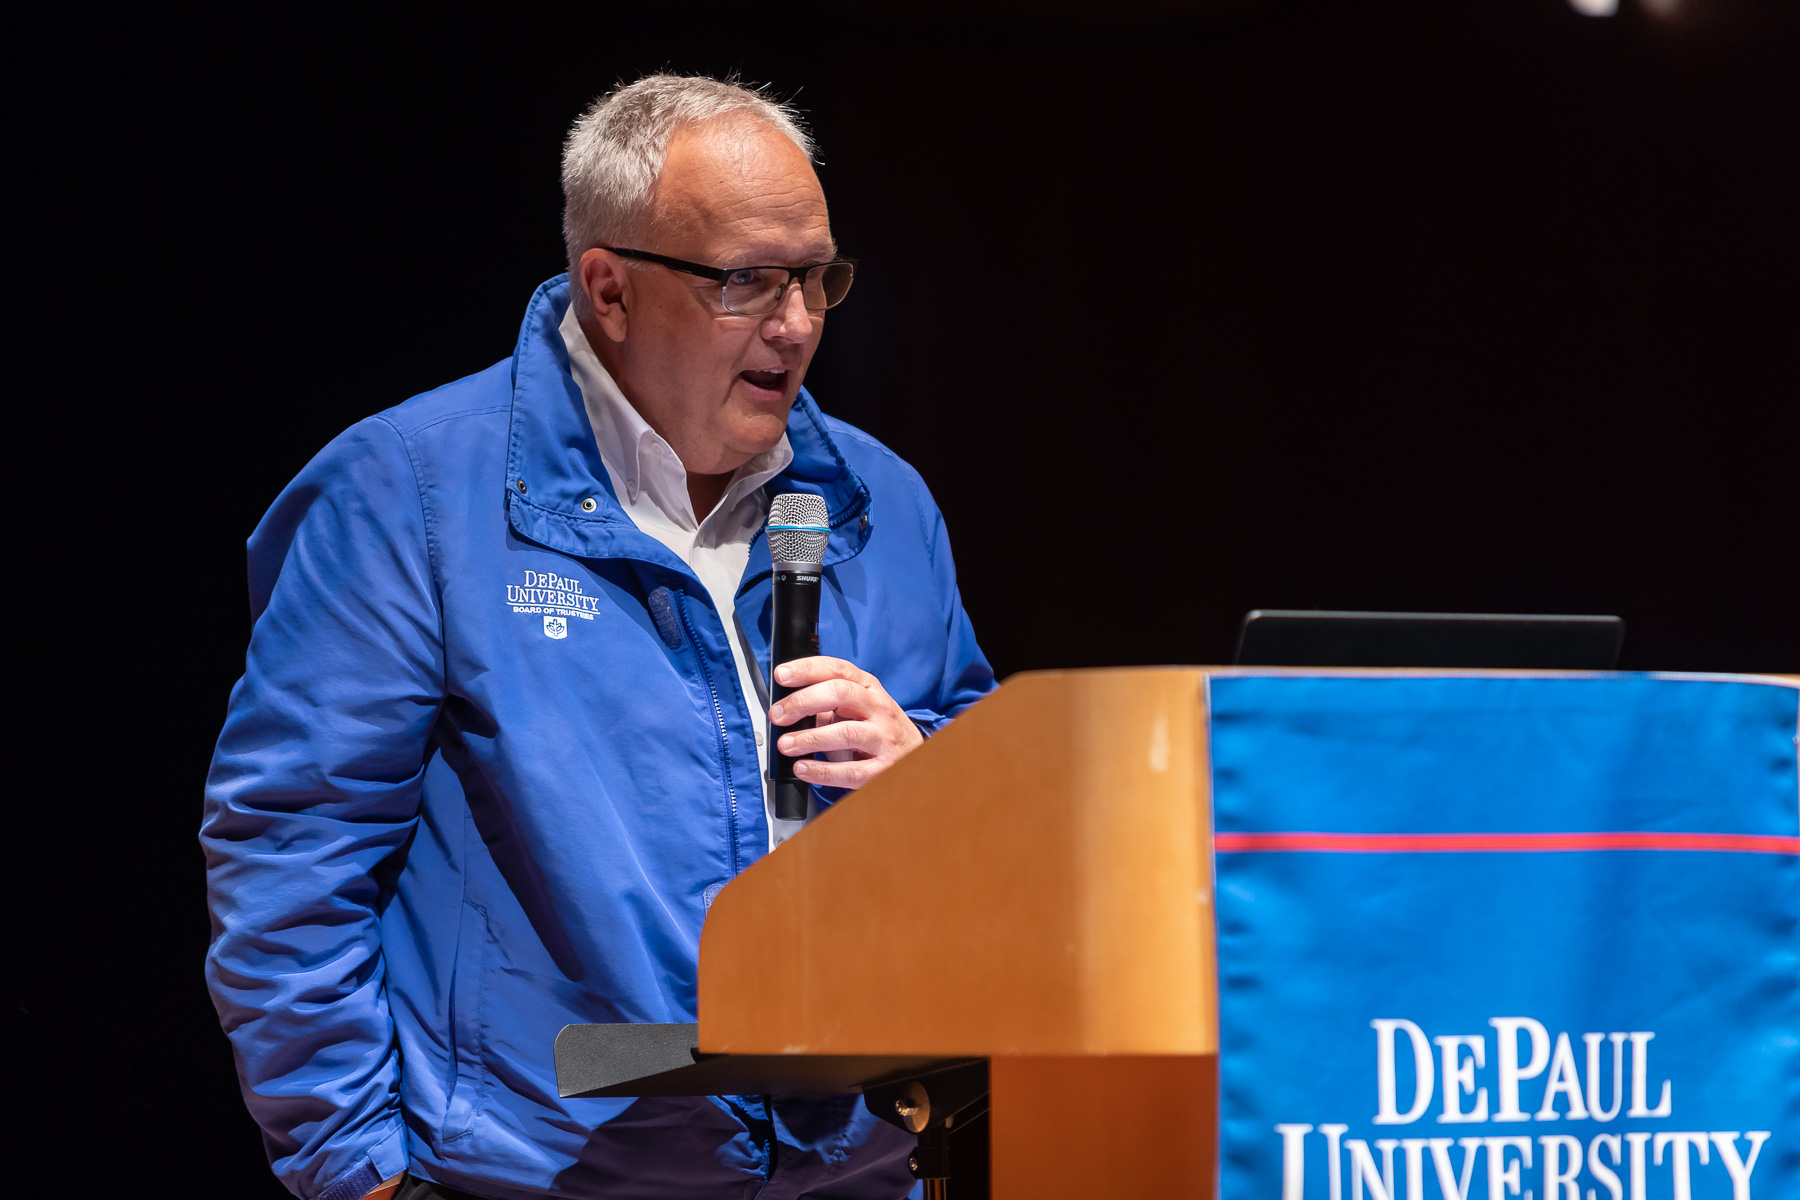 The Rev. Edward R. Udovic, C.M., secretary of the university, gives an invocation during the State of the University address. (DePaul University/Jeff Carrion)​